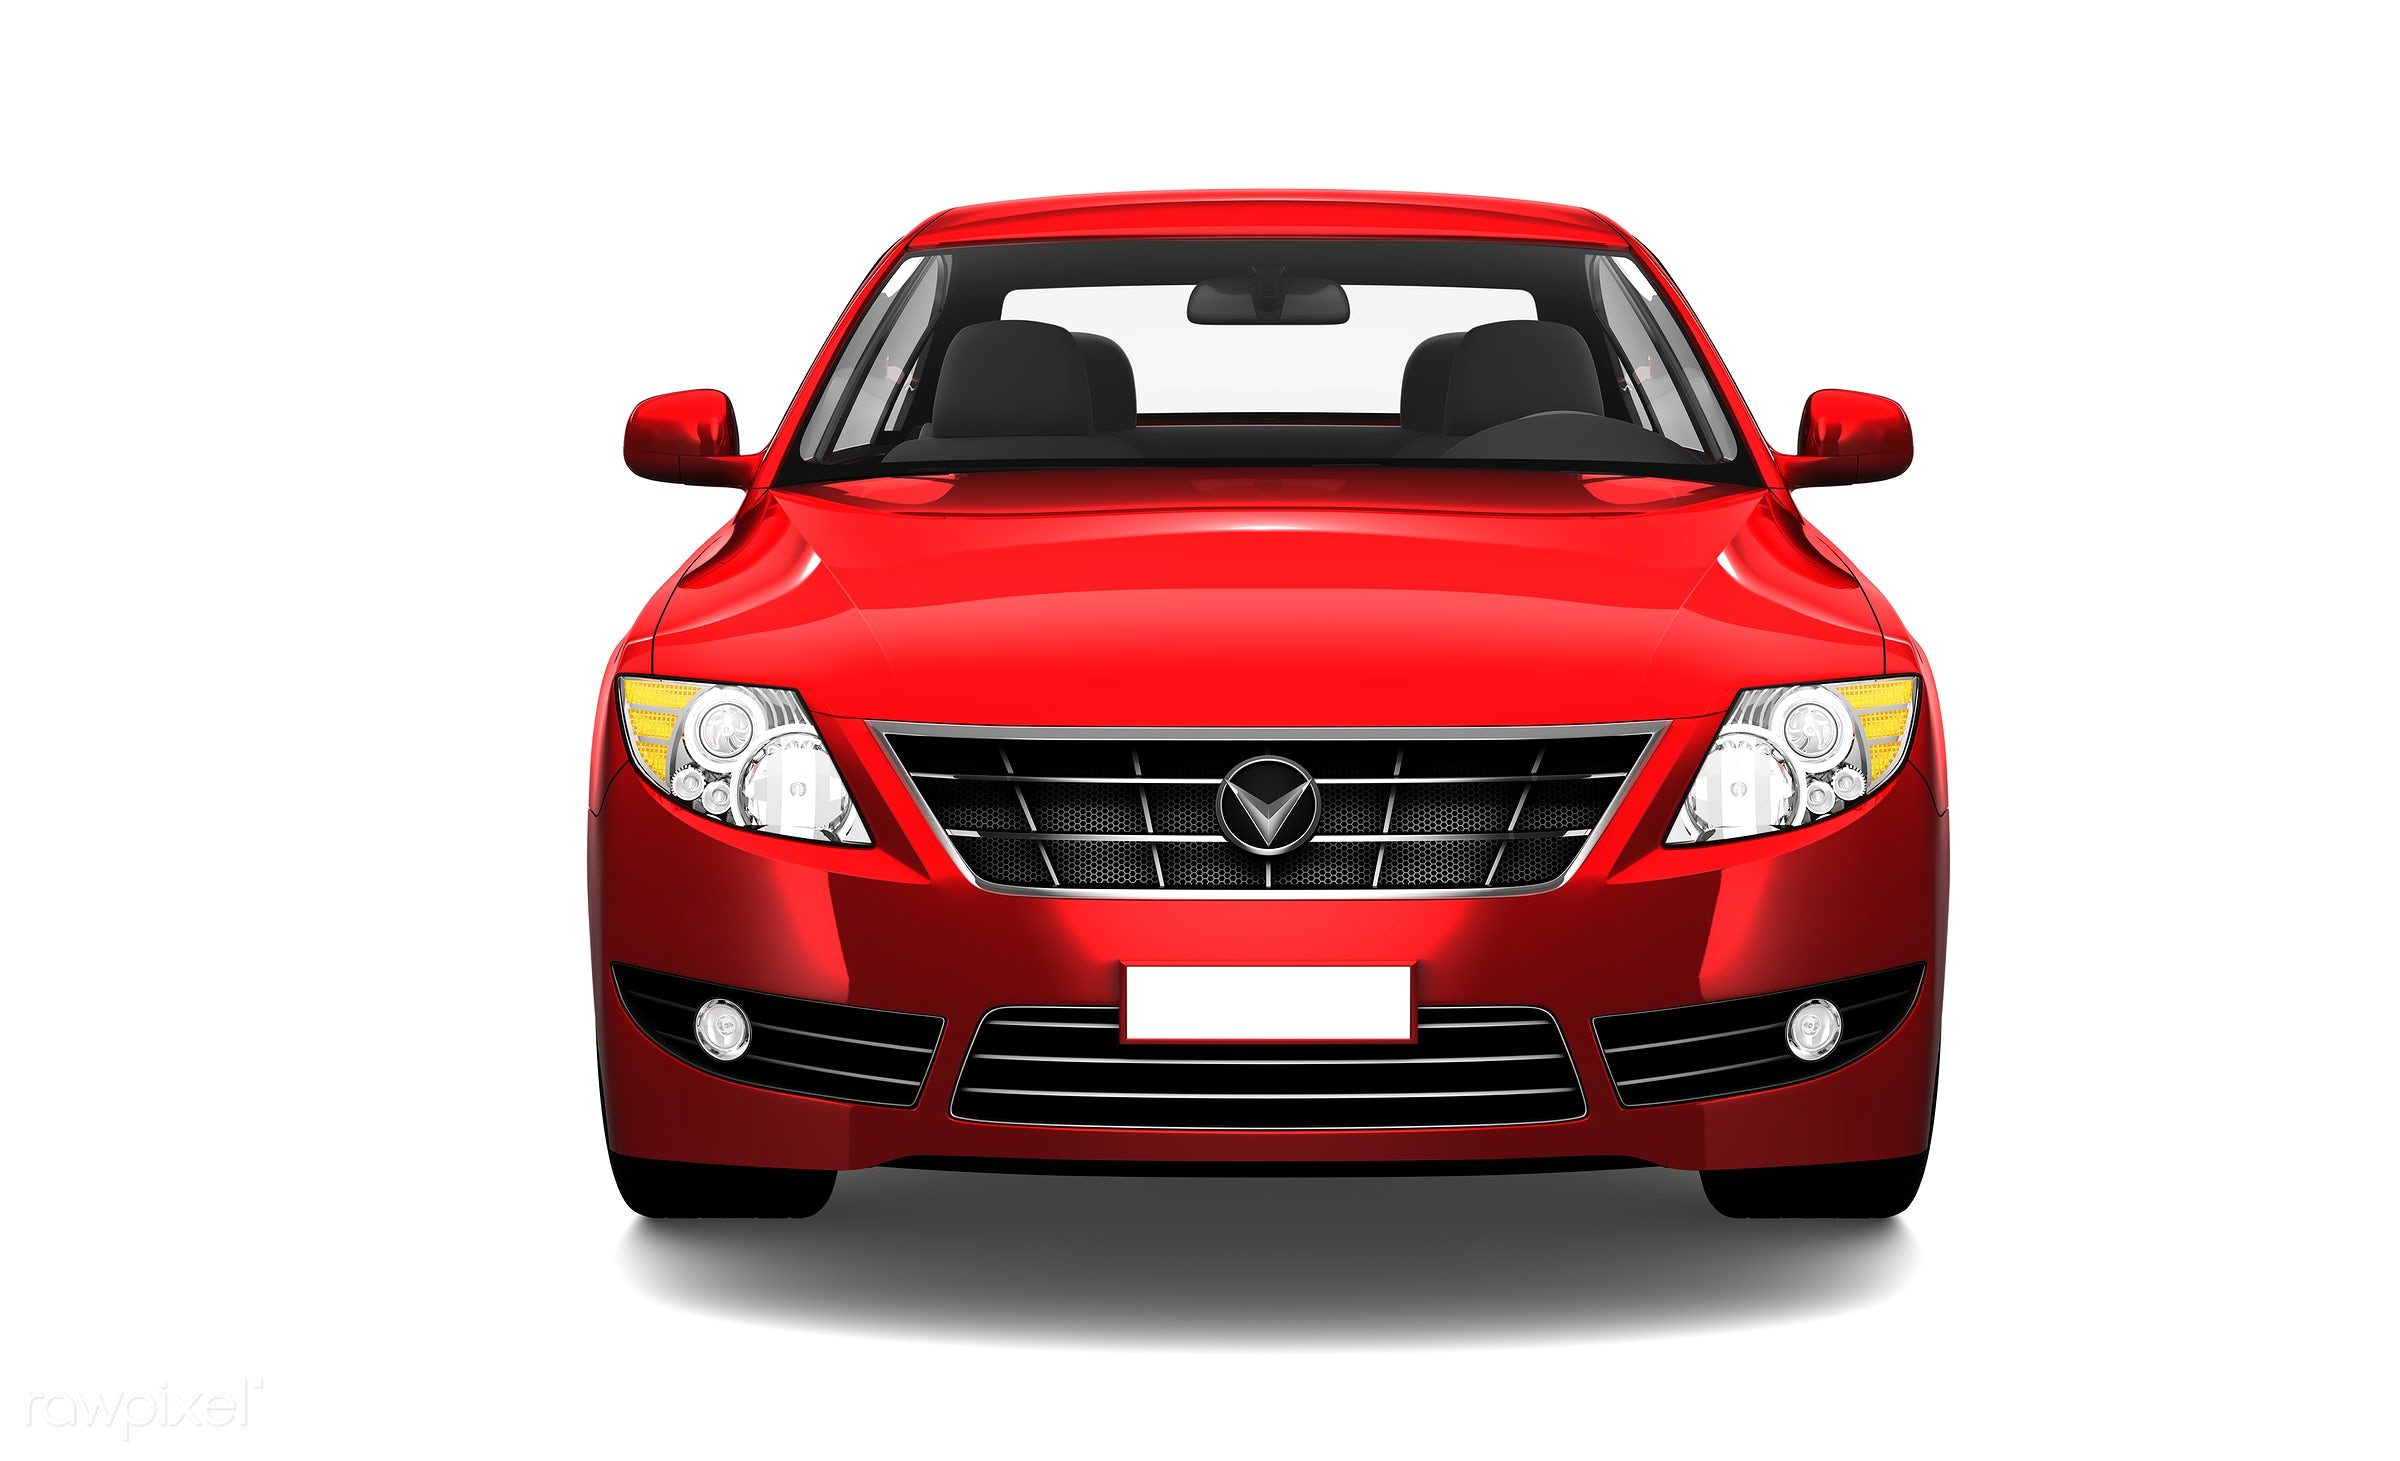 Three dimensional image of red car - car, 3d, automobile, automotive, brandless, concept car, graphic, holiday, illustration...